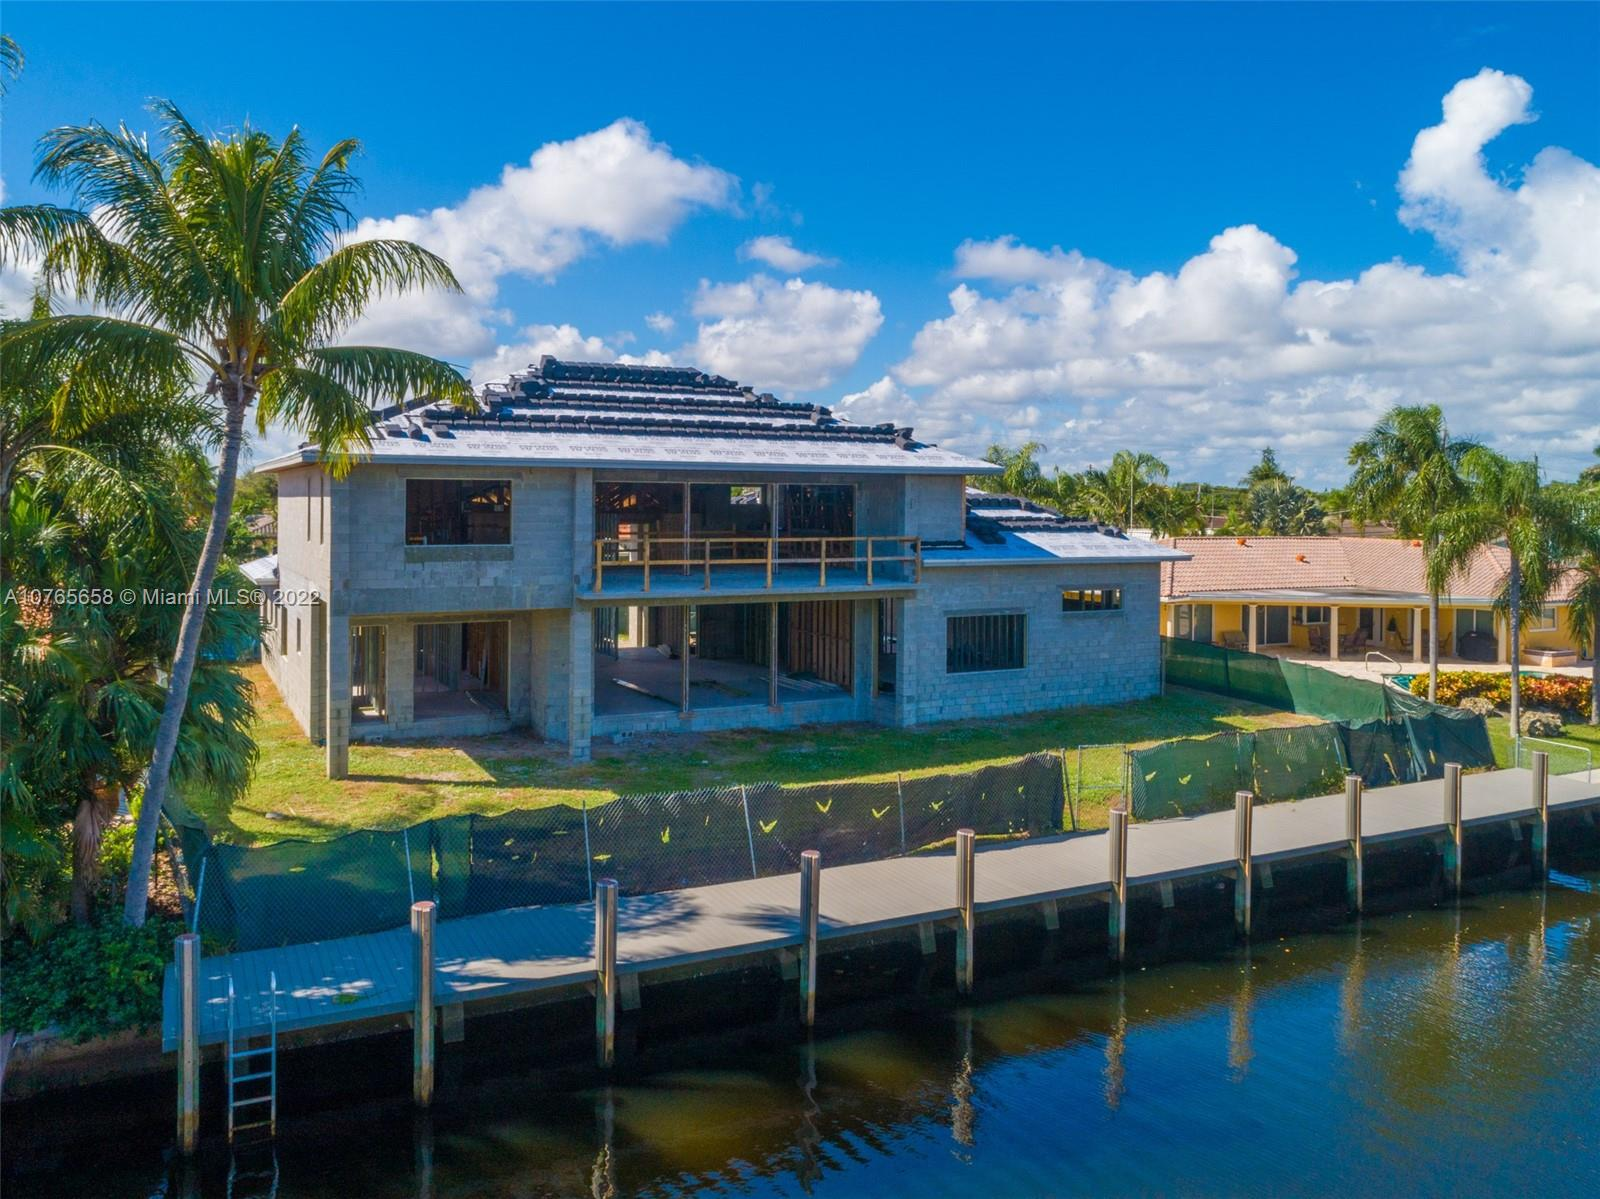 image #1 of property, Pompano Waterway Estates